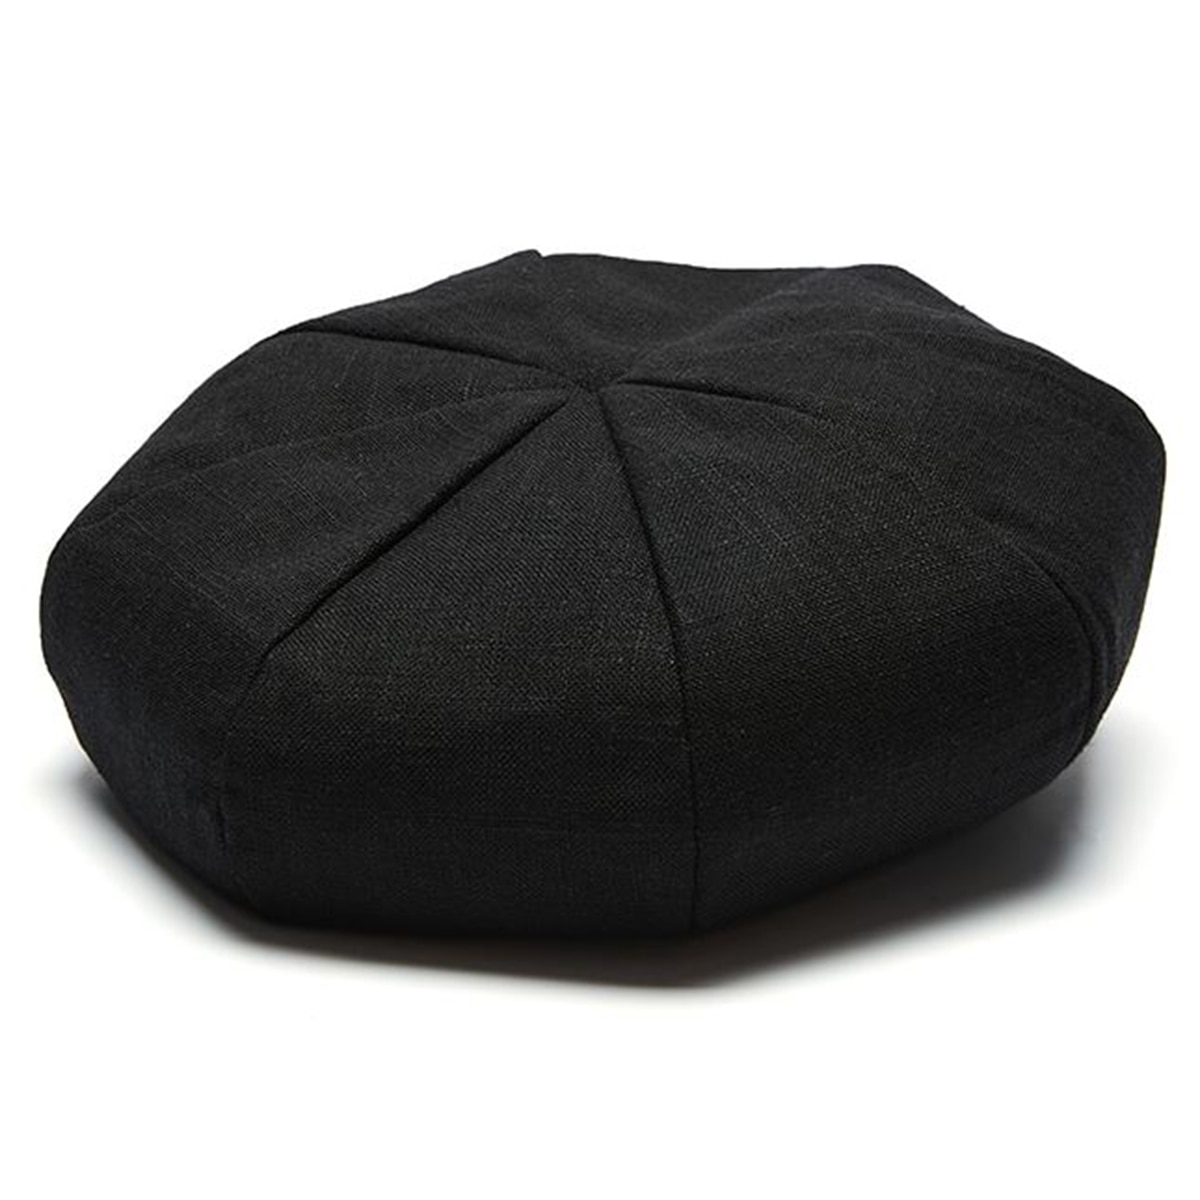 [밀리어네어햇 베레모] Millionairehats - (Linen) octangle beret - BLACK